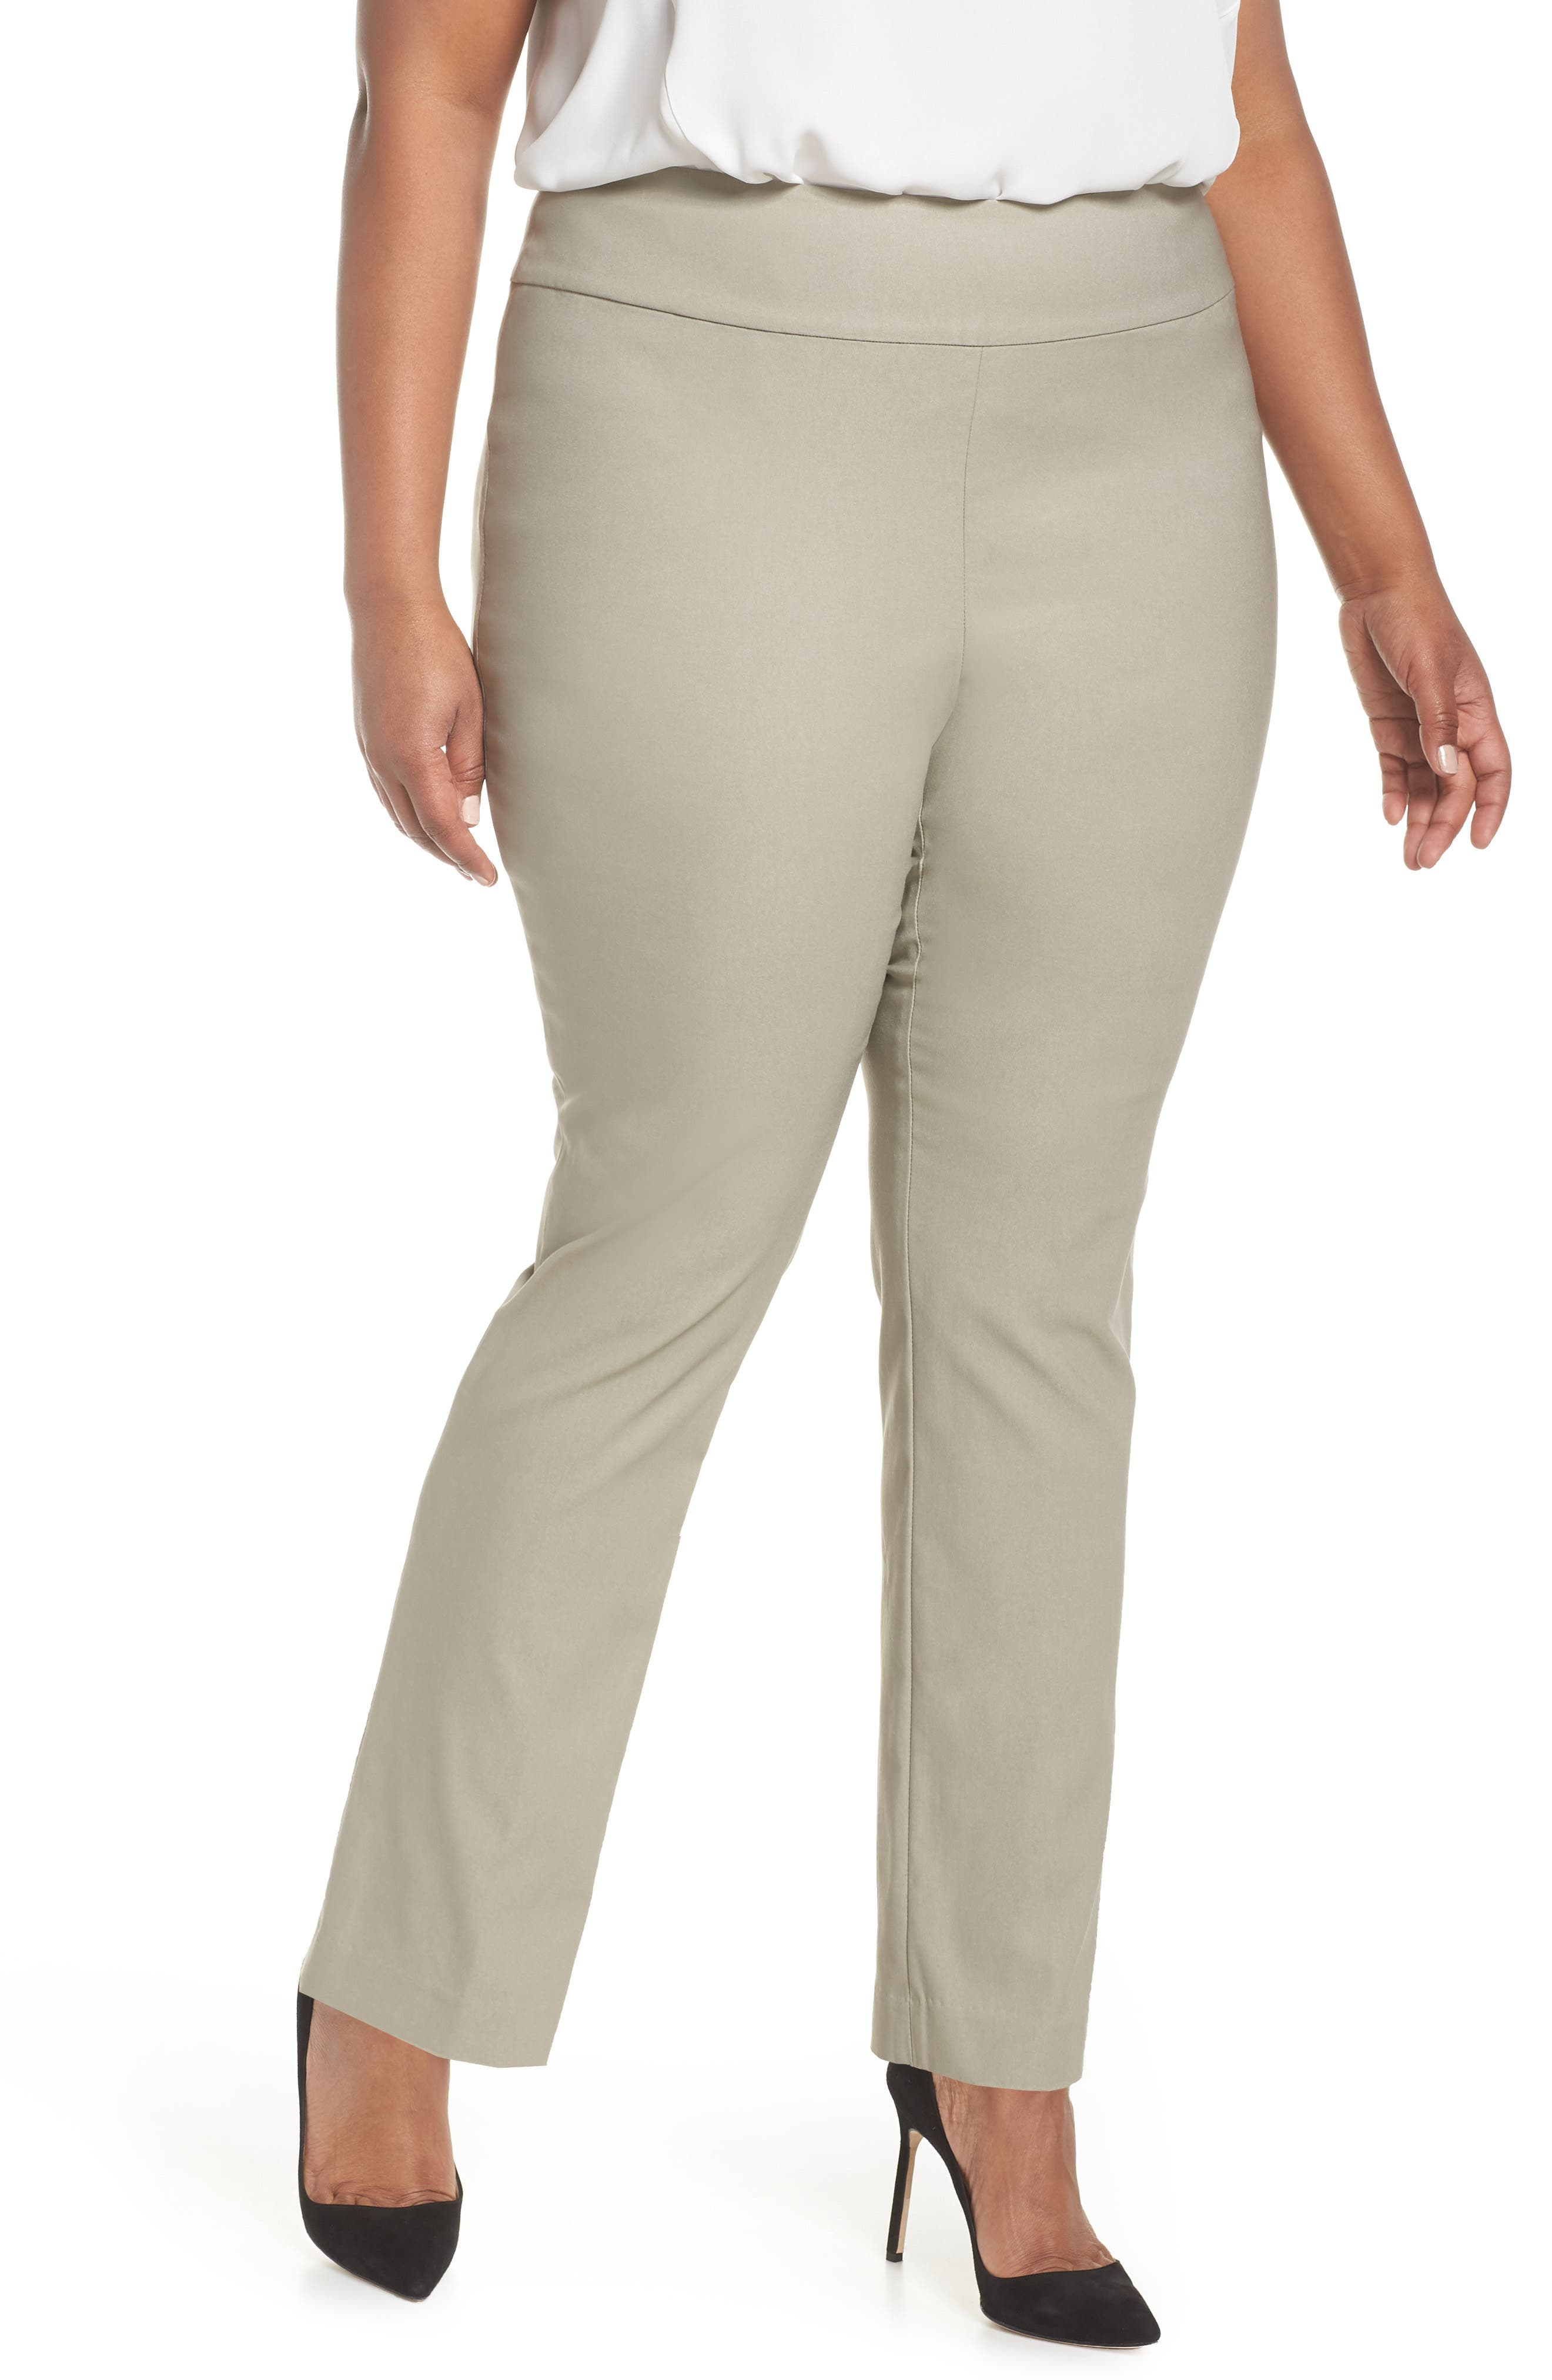 Wonderstretch High Rise Pants,                             Main thumbnail 1, color,                             251